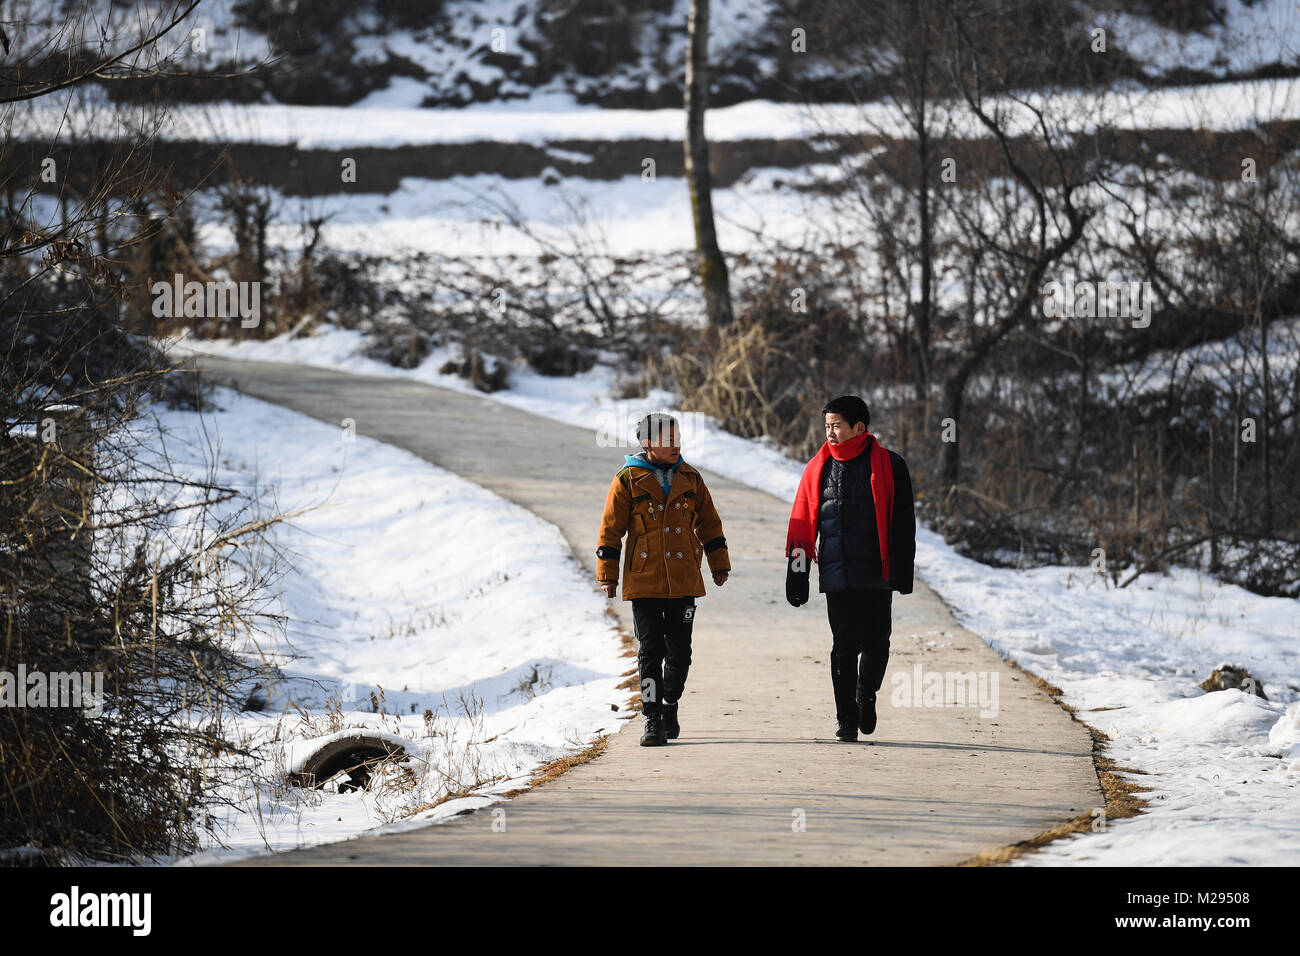 (180206) -- KANGLE, Feb. 6, 2018 (Xinhua) -- Sun Jianjun (R) and his younger brother Sun Jianqiang walk in Xinzhuang - Stock Image